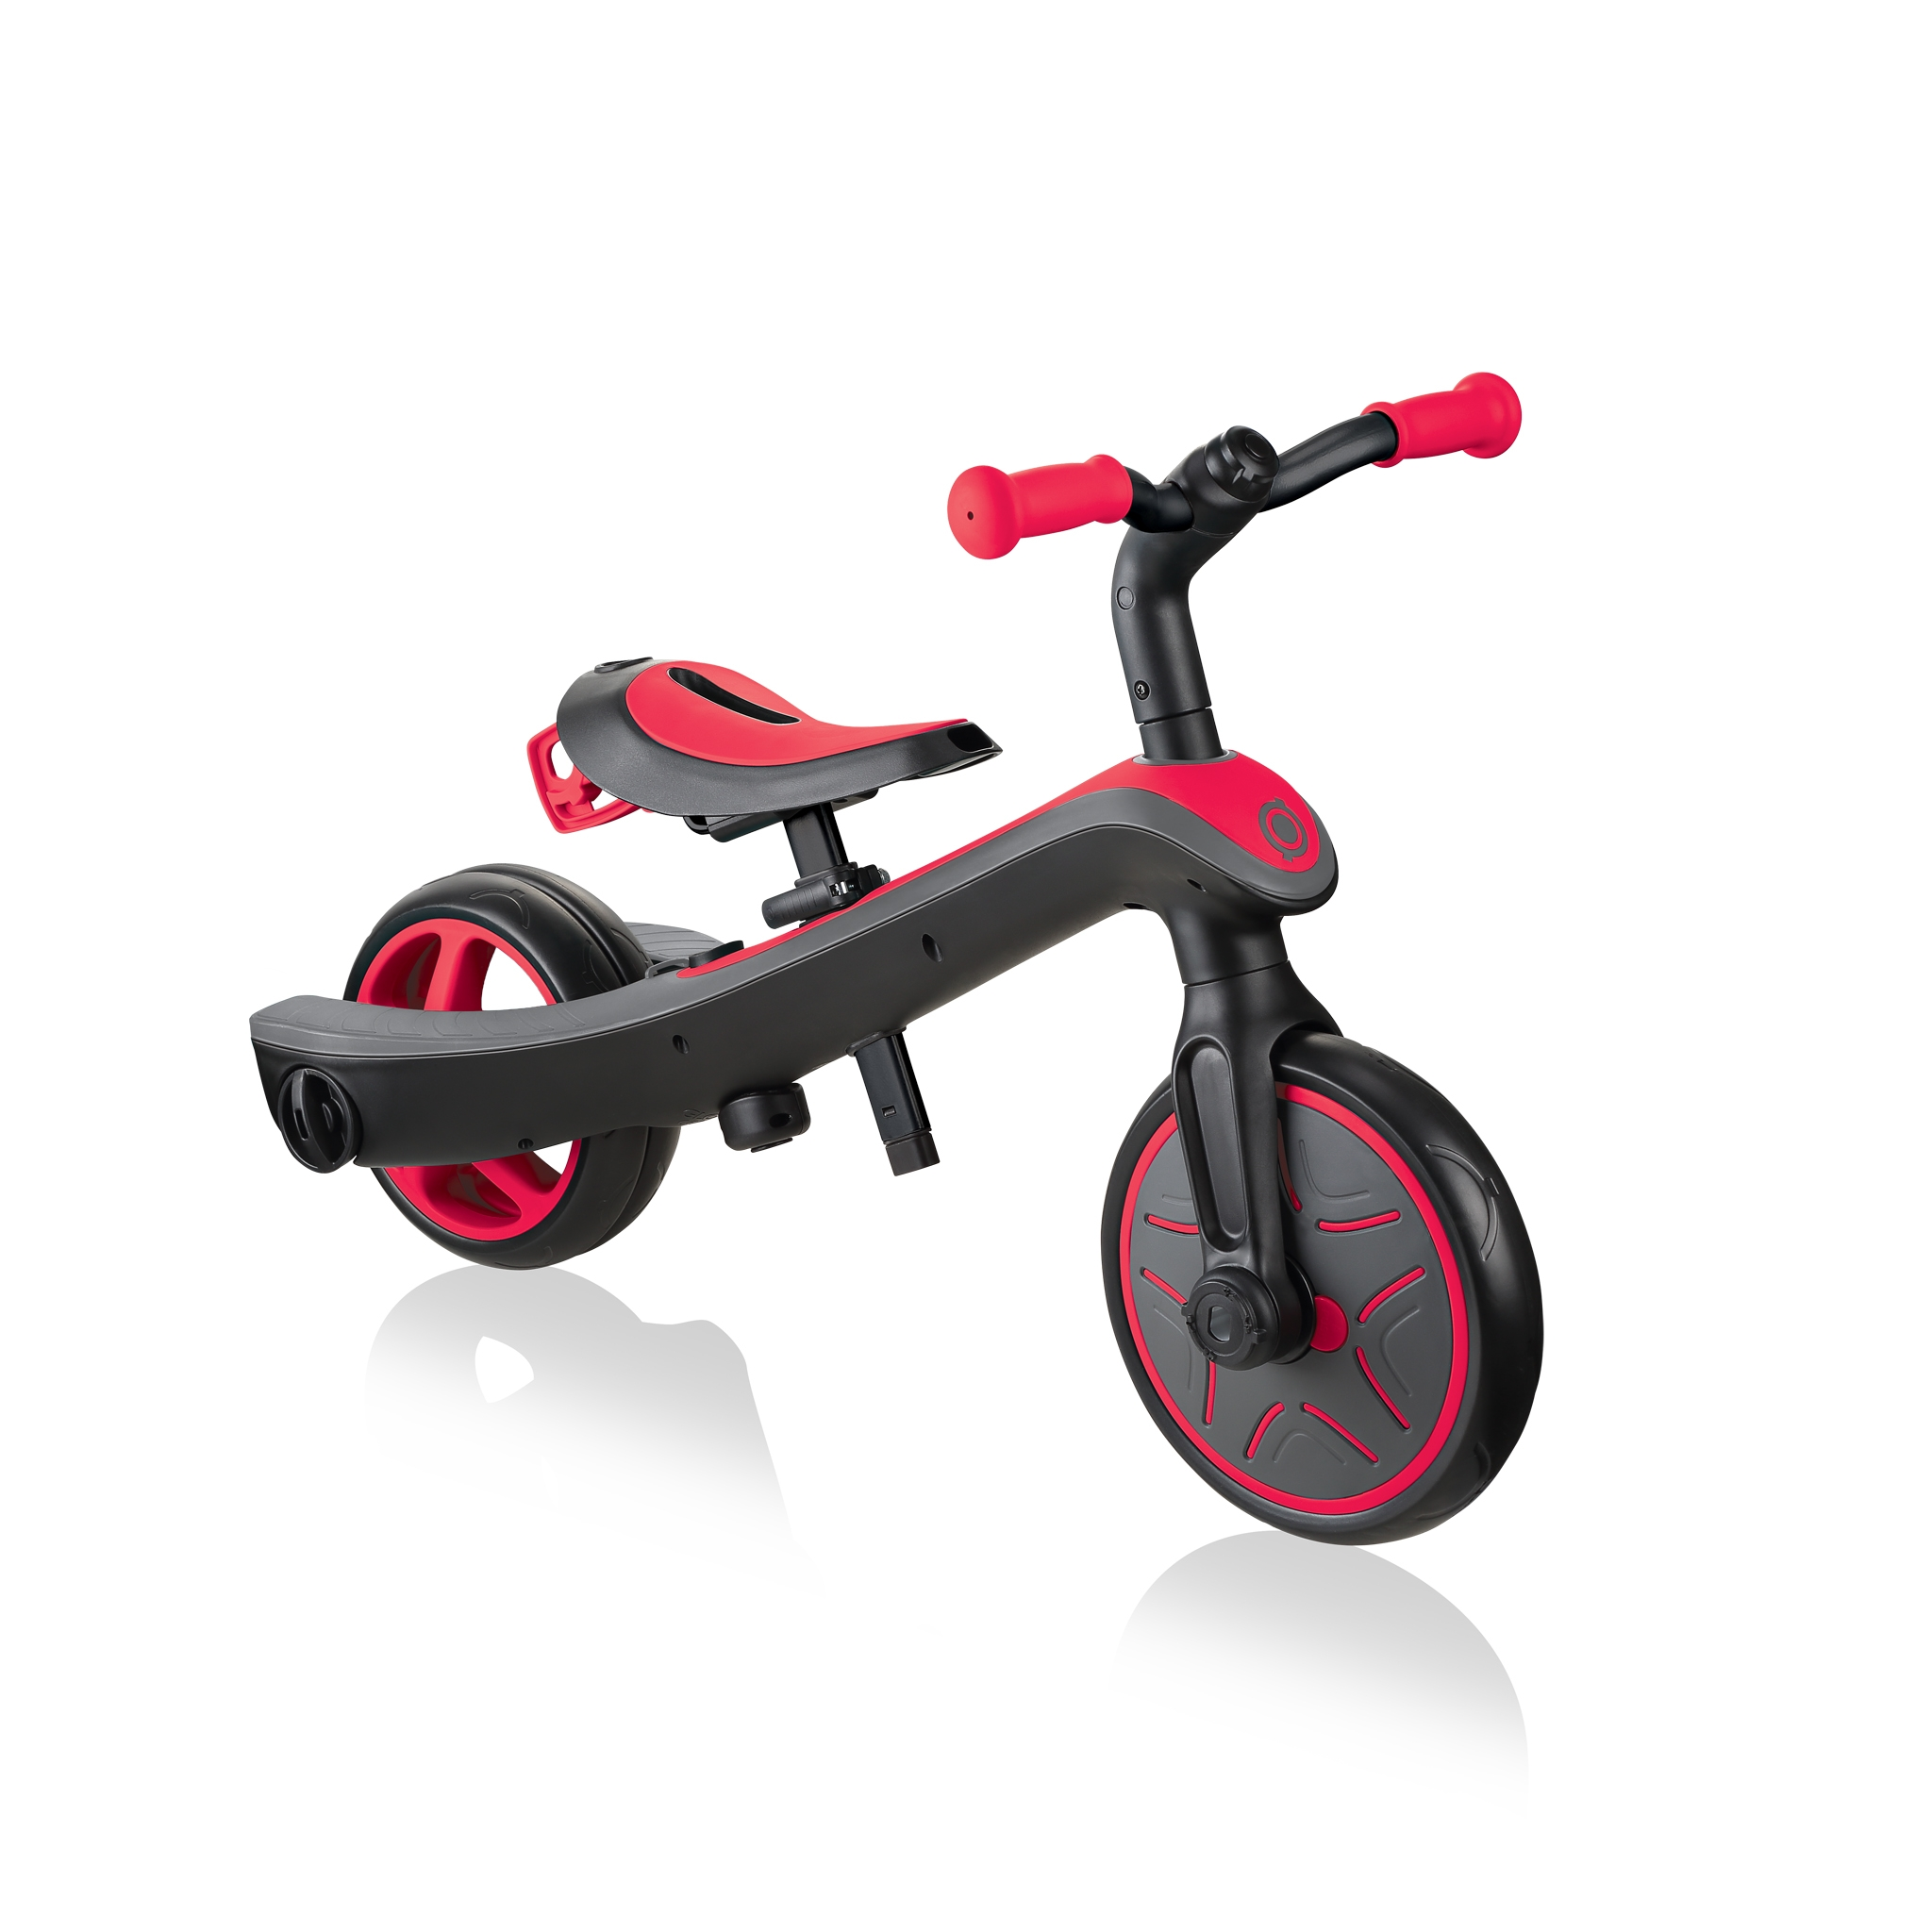 Globber-EXPLORER-TRIKE-2in1-all-in-one-training-tricycle-and-kids-balance-bike-stage2-balance-bike_new-red 1